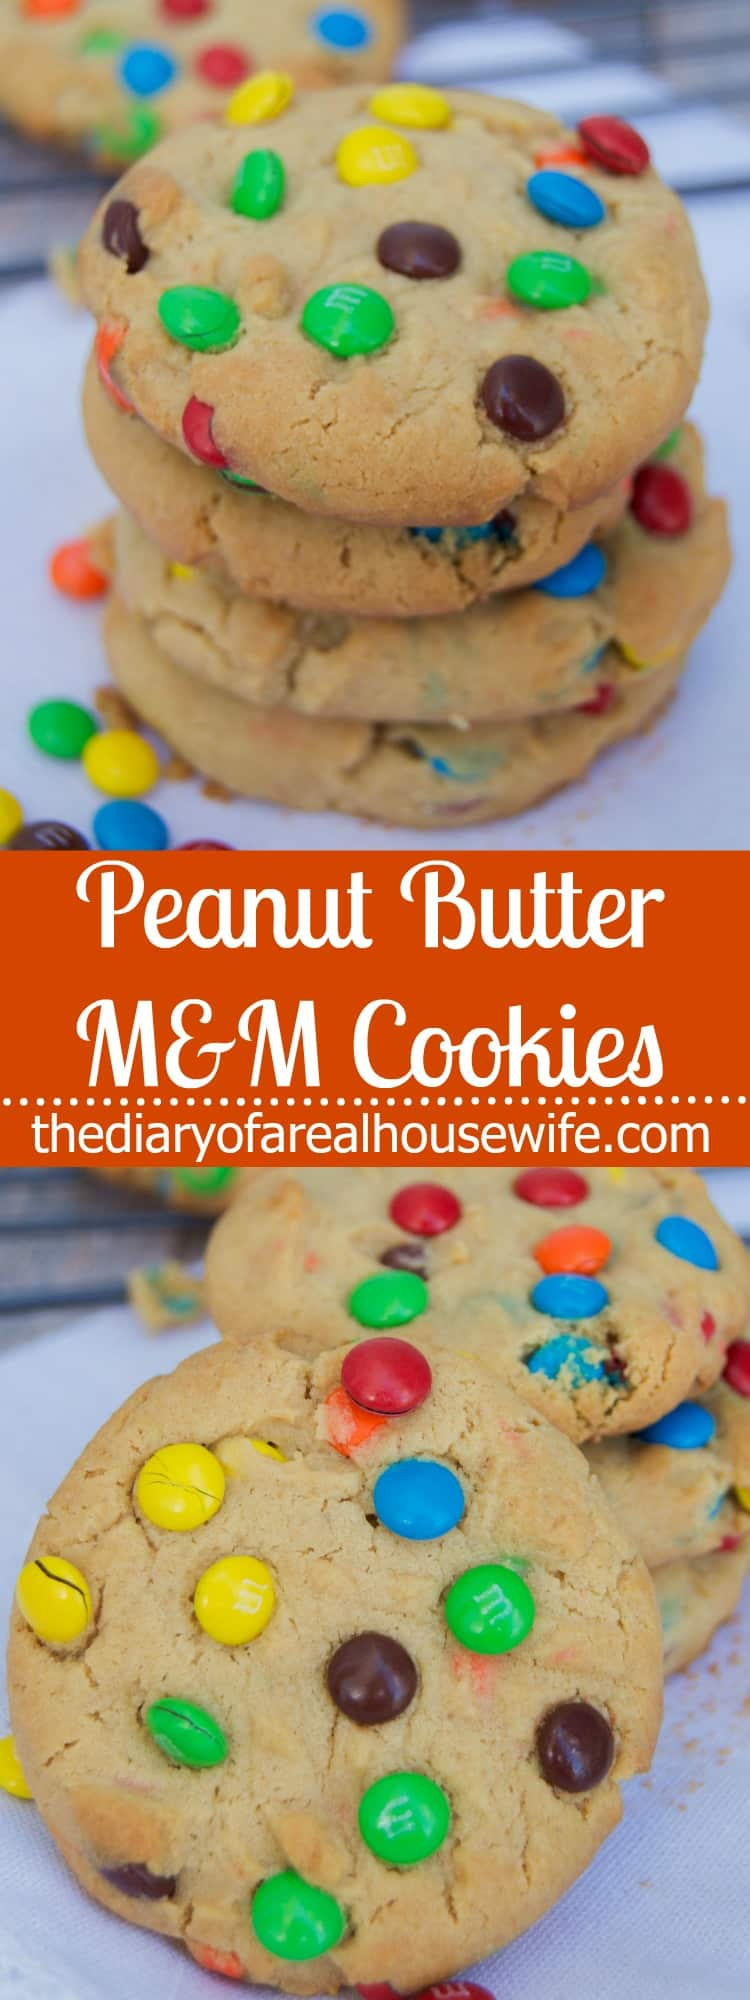 Peanut Butter M&M Cookie